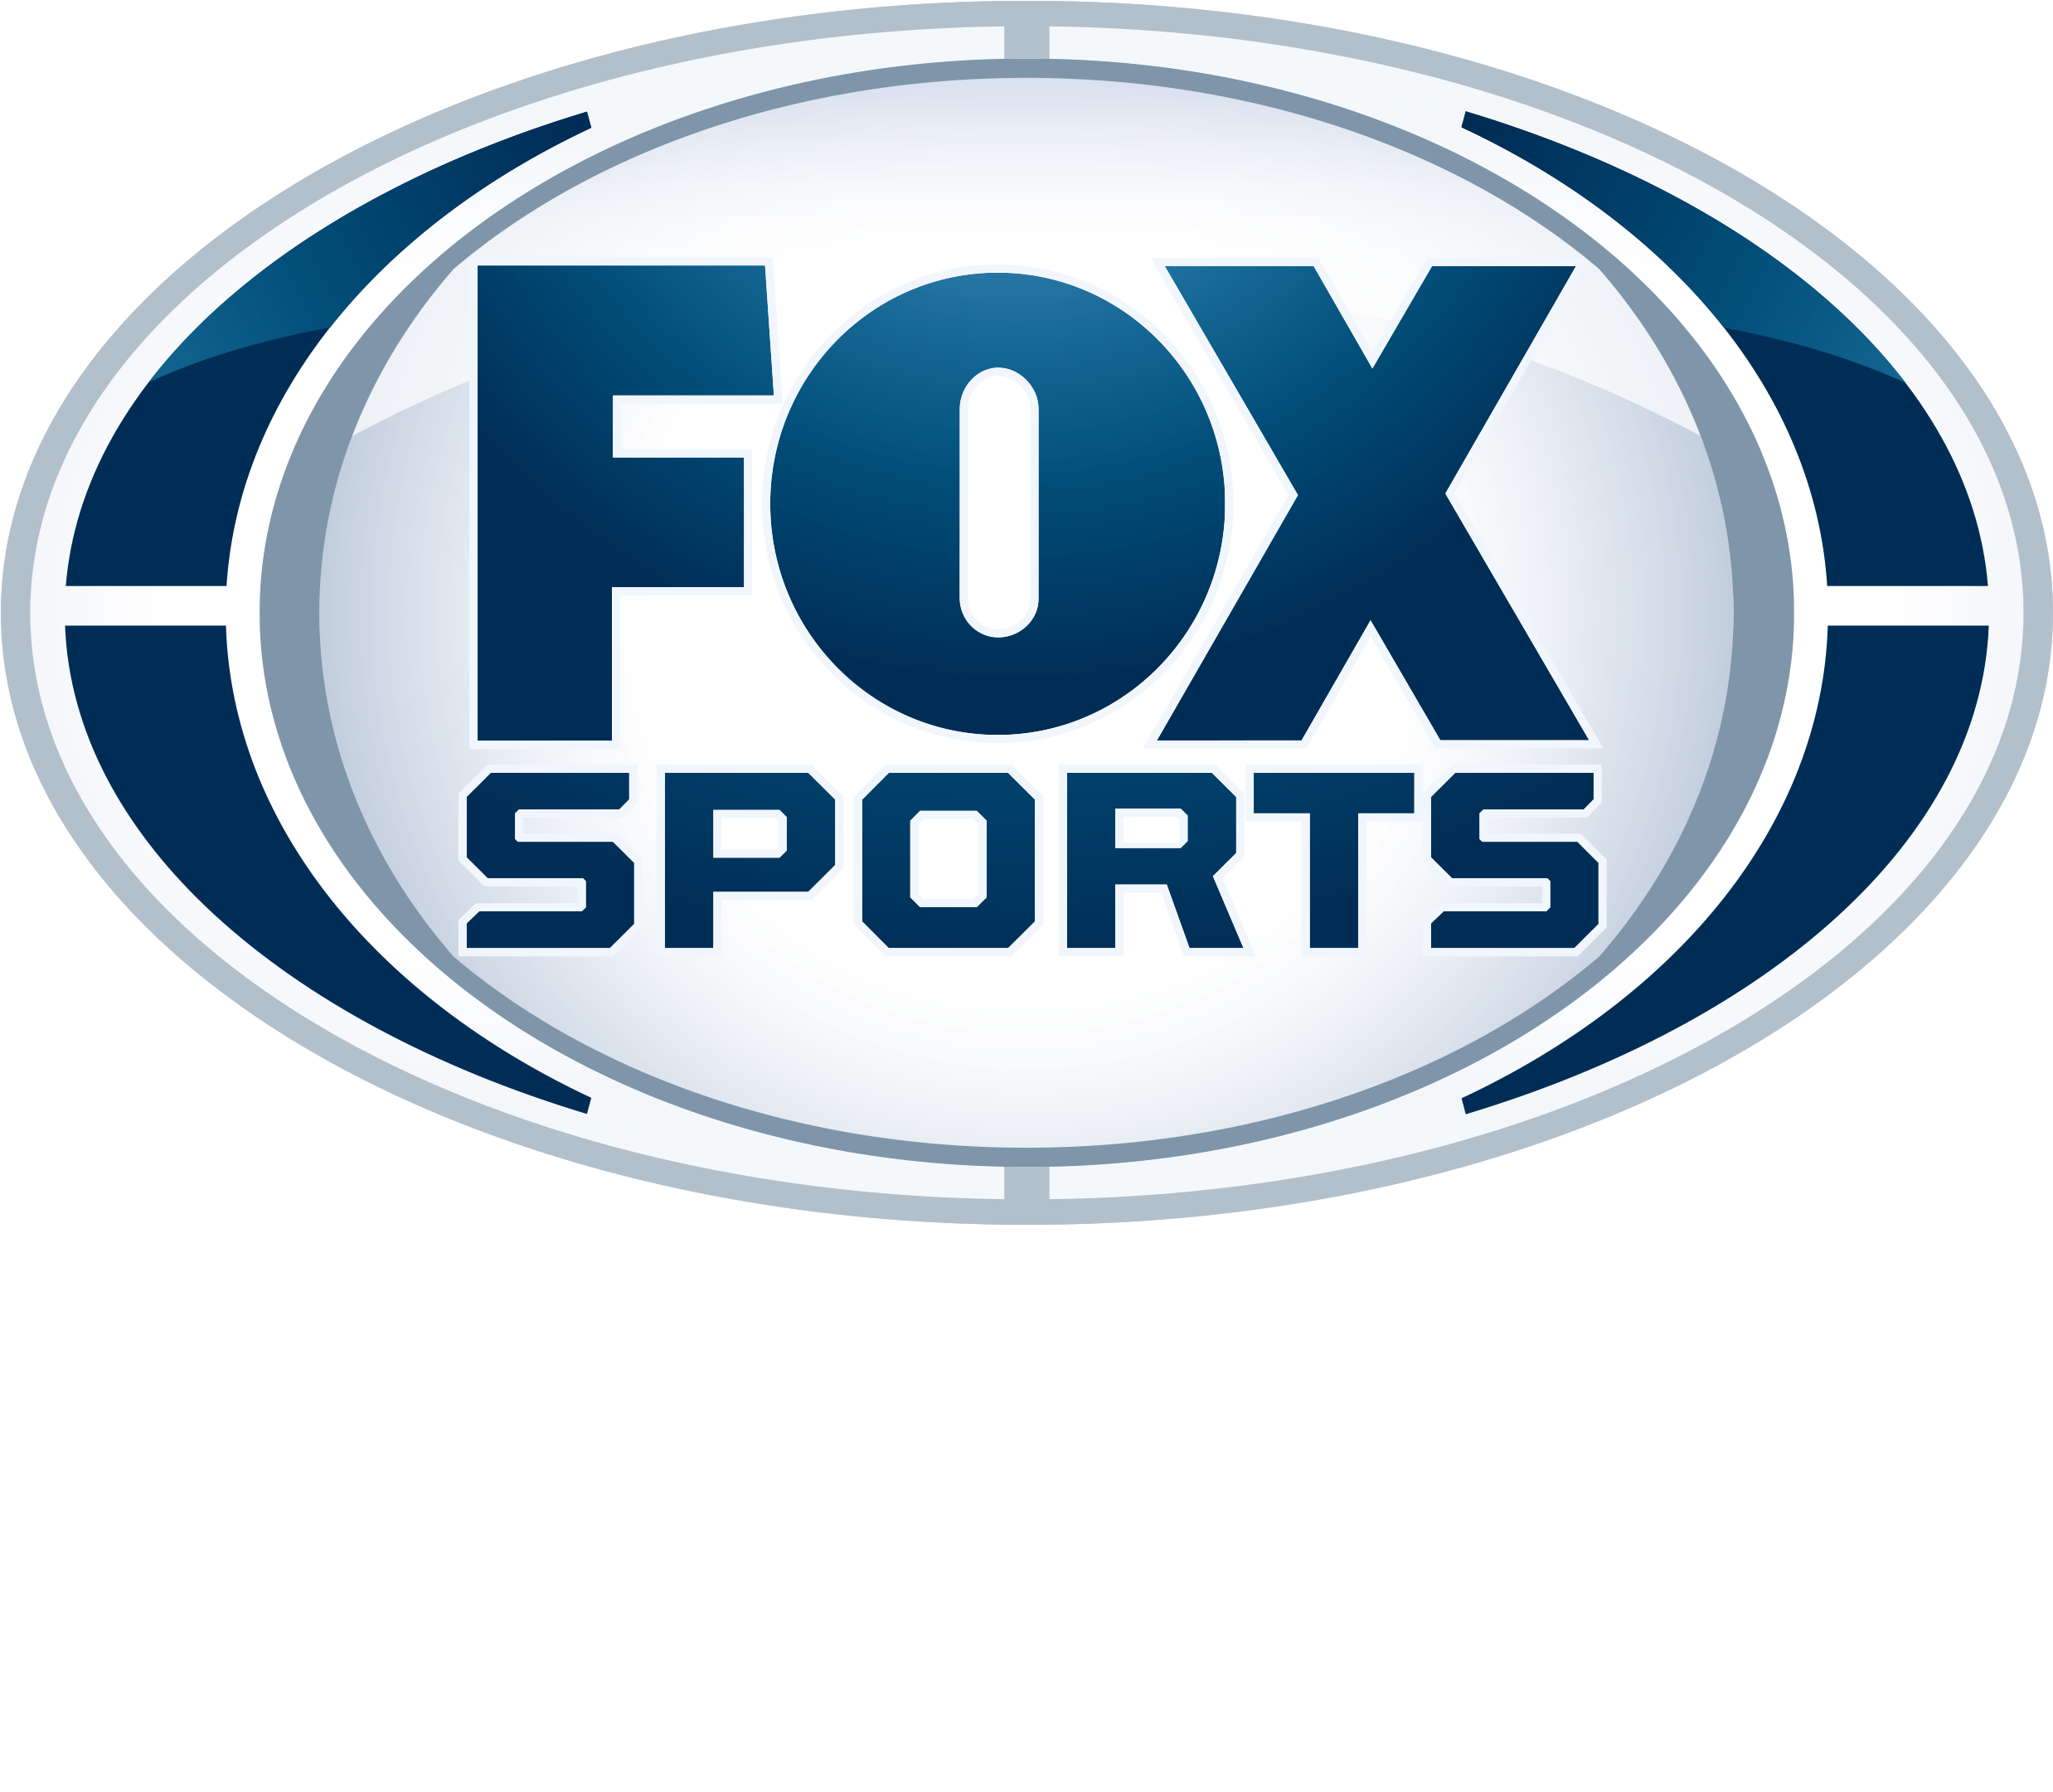 Download Fox Sports Logo.